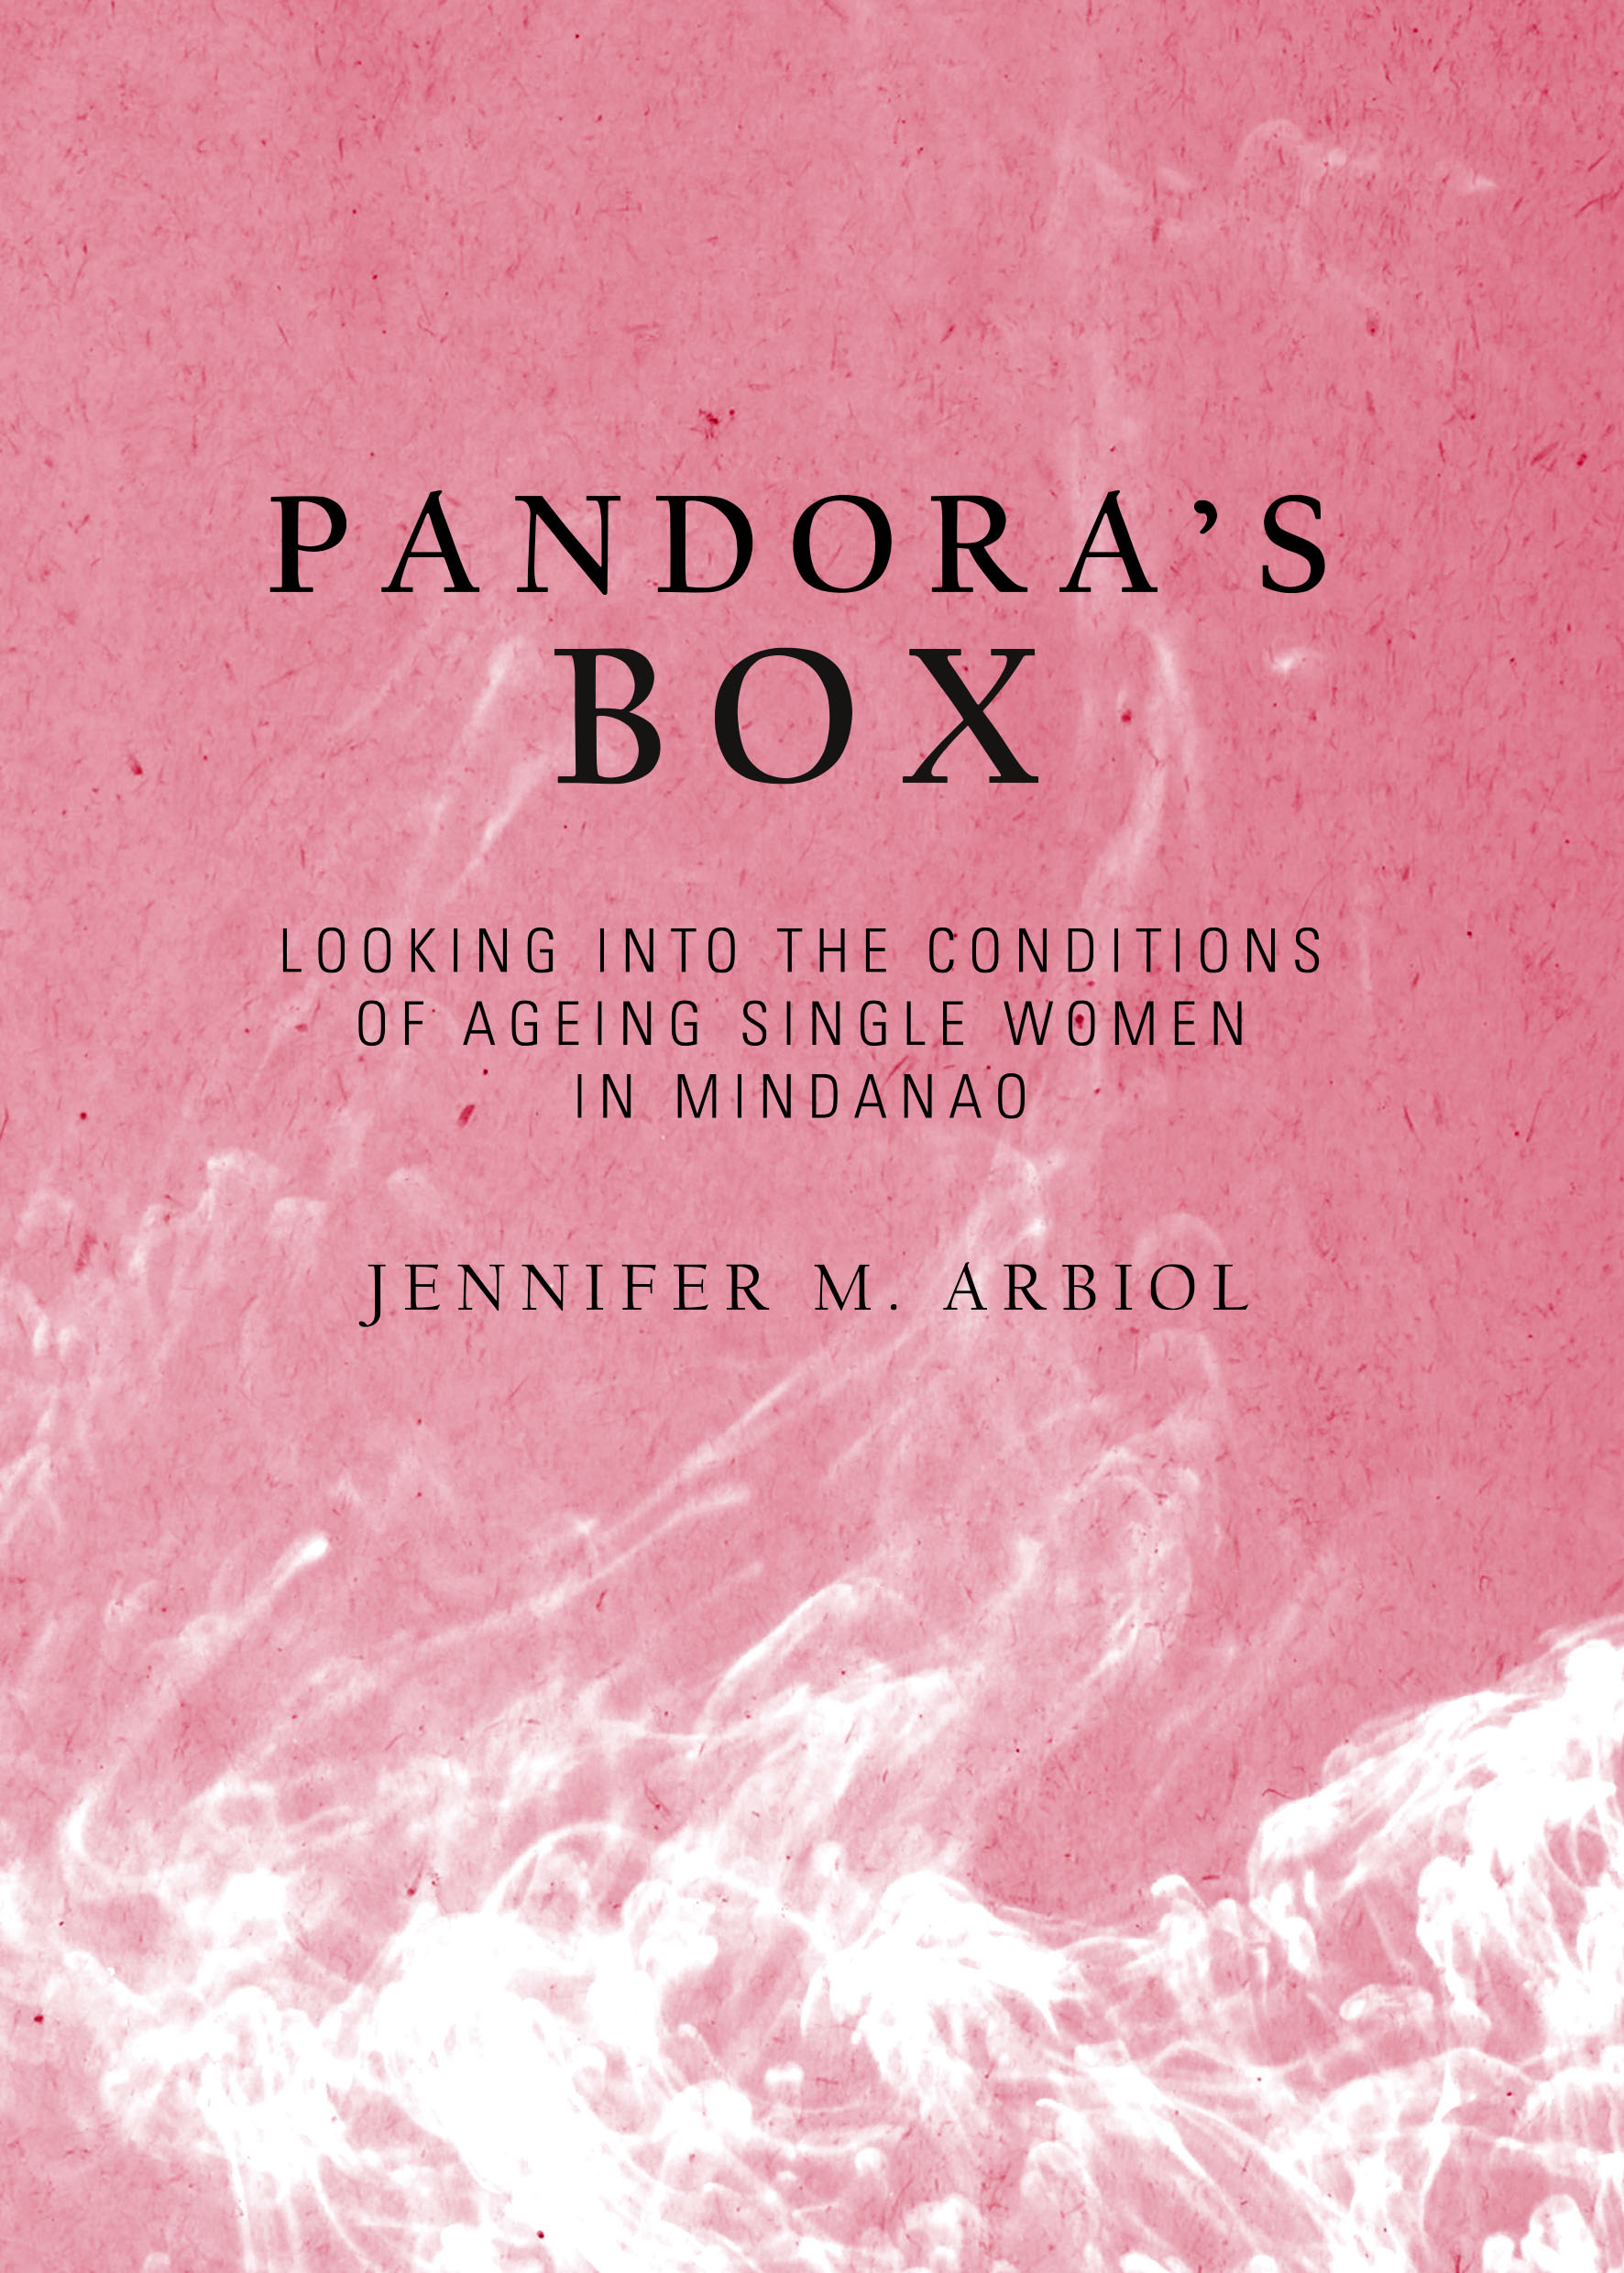 Pandora's Box: Looking into the Conditions of Ageing Single Women in Mindanao